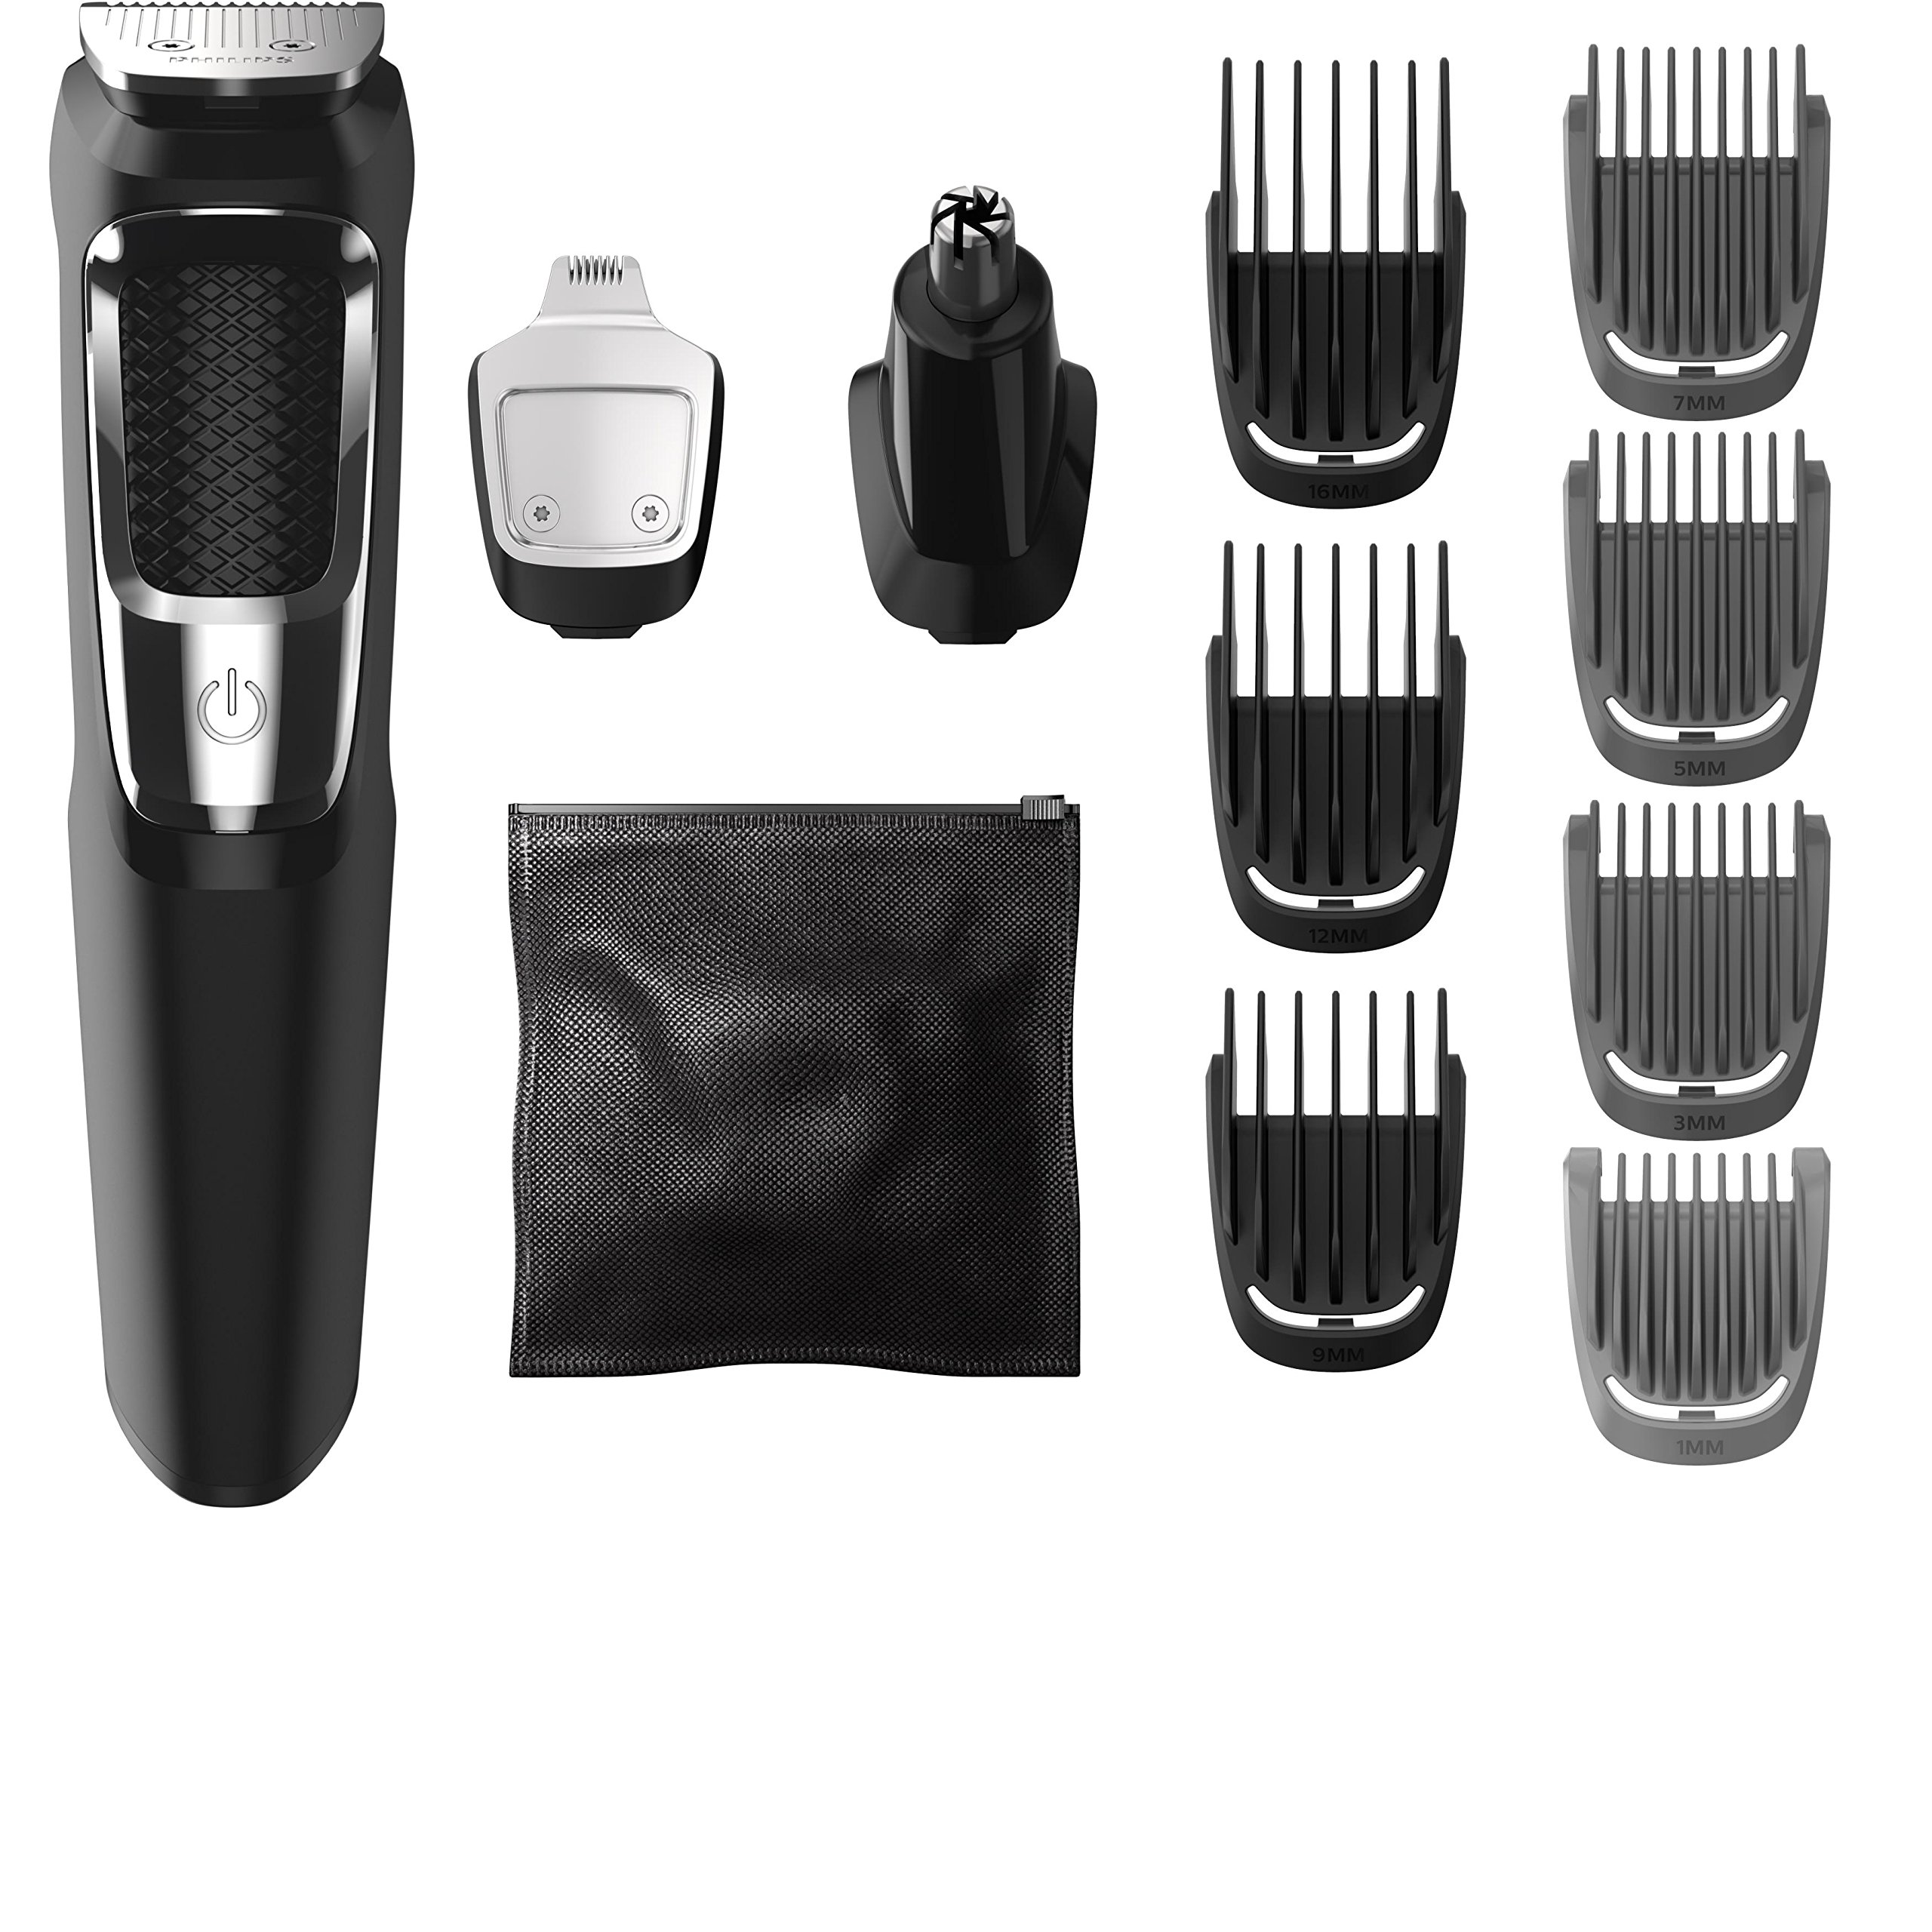 Wahl Color Pro Complete Hair Cutting Kit 79300 400t Coding Your Circuit Breaker Box First Home Love Life Philips Norelco Multi Groomer Mg3750 50 13 Piece Beard Face Nose